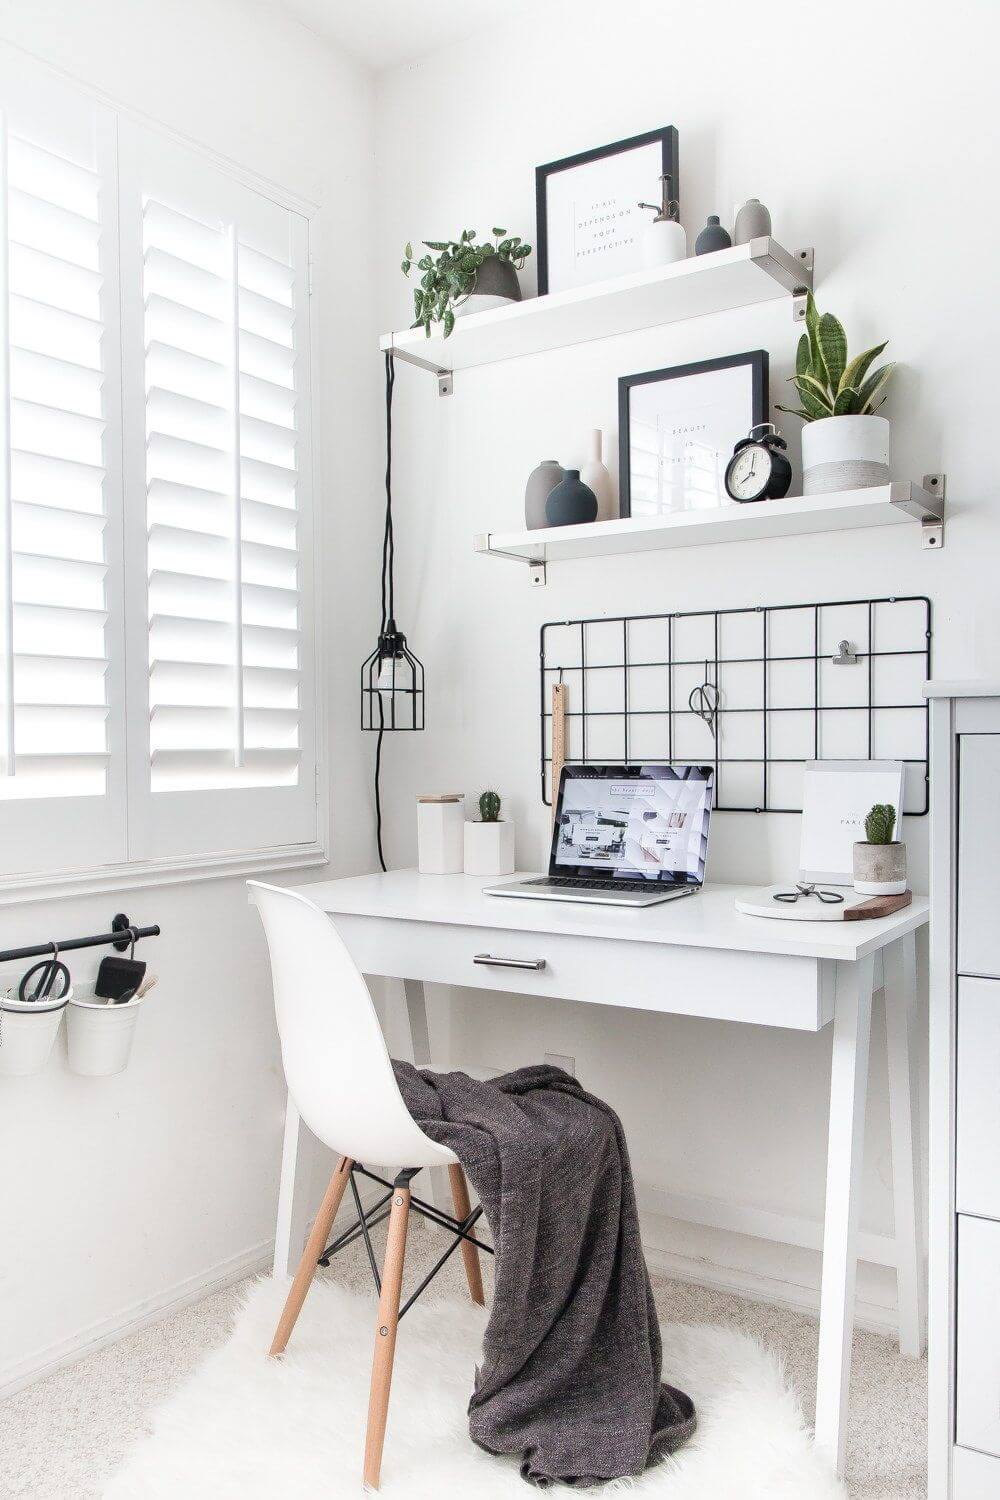 110 home offices mais incriveis do Pinterest